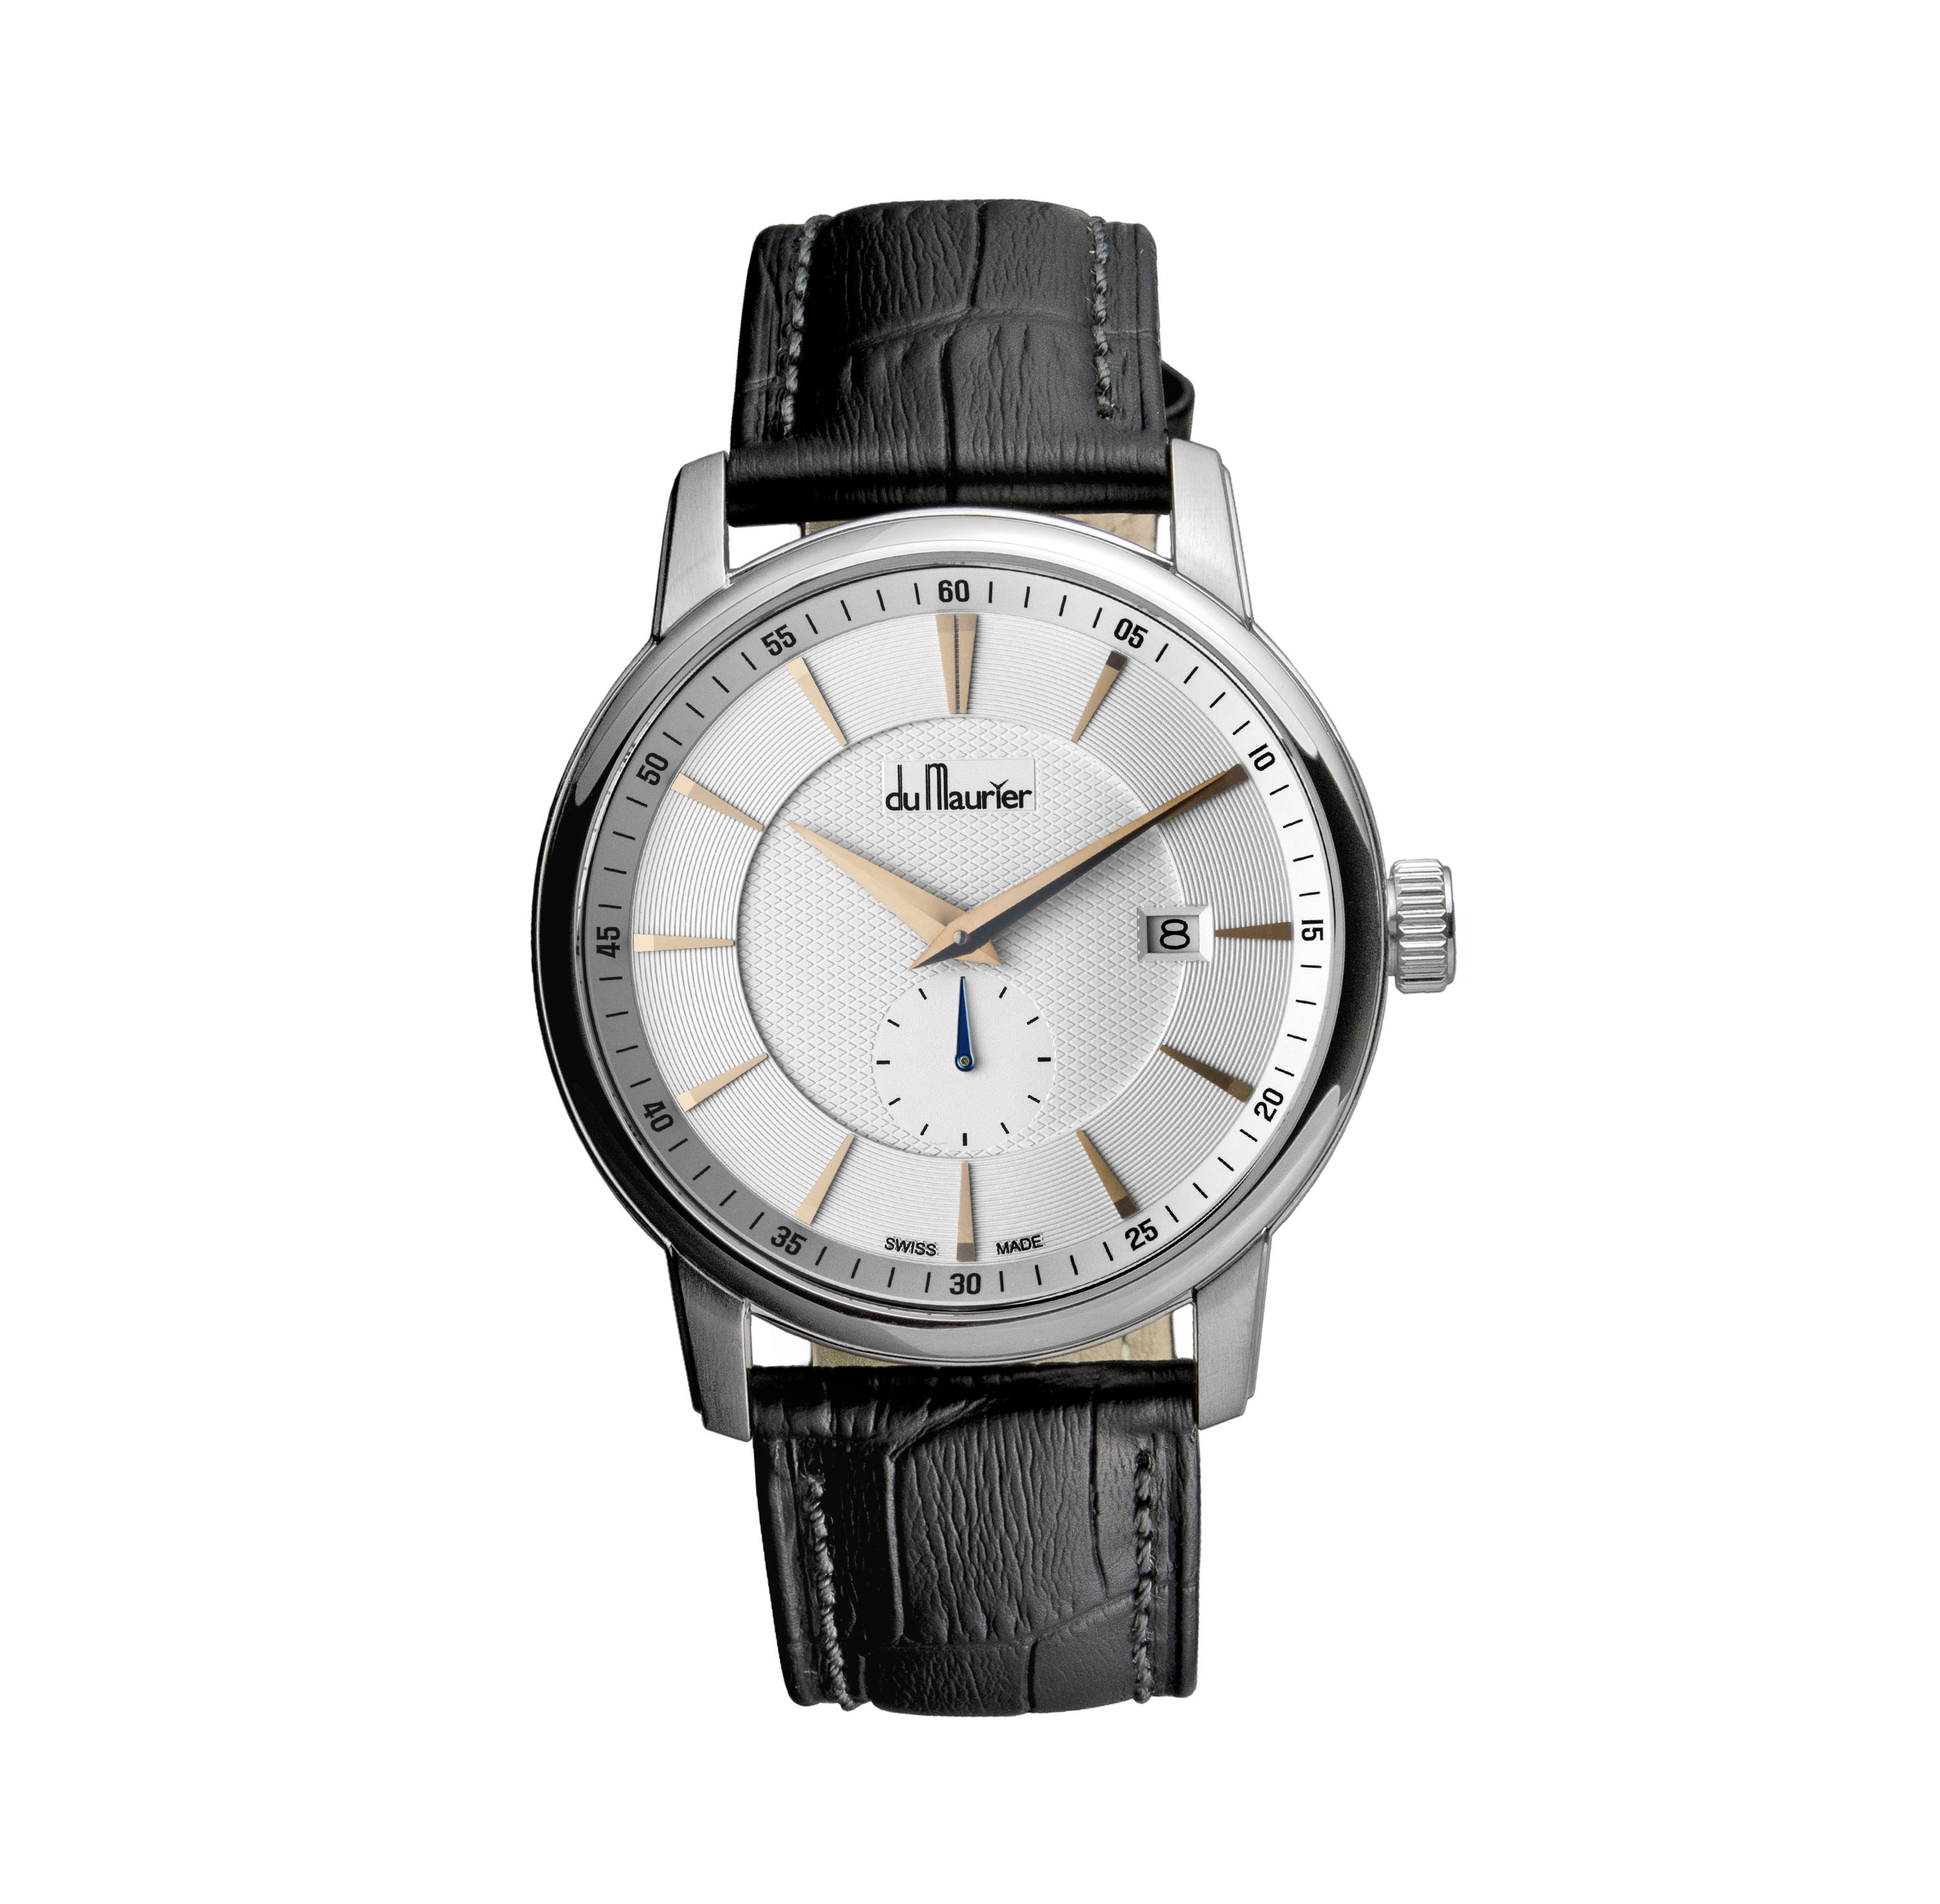 lea white watches dial tacs creamy d drop